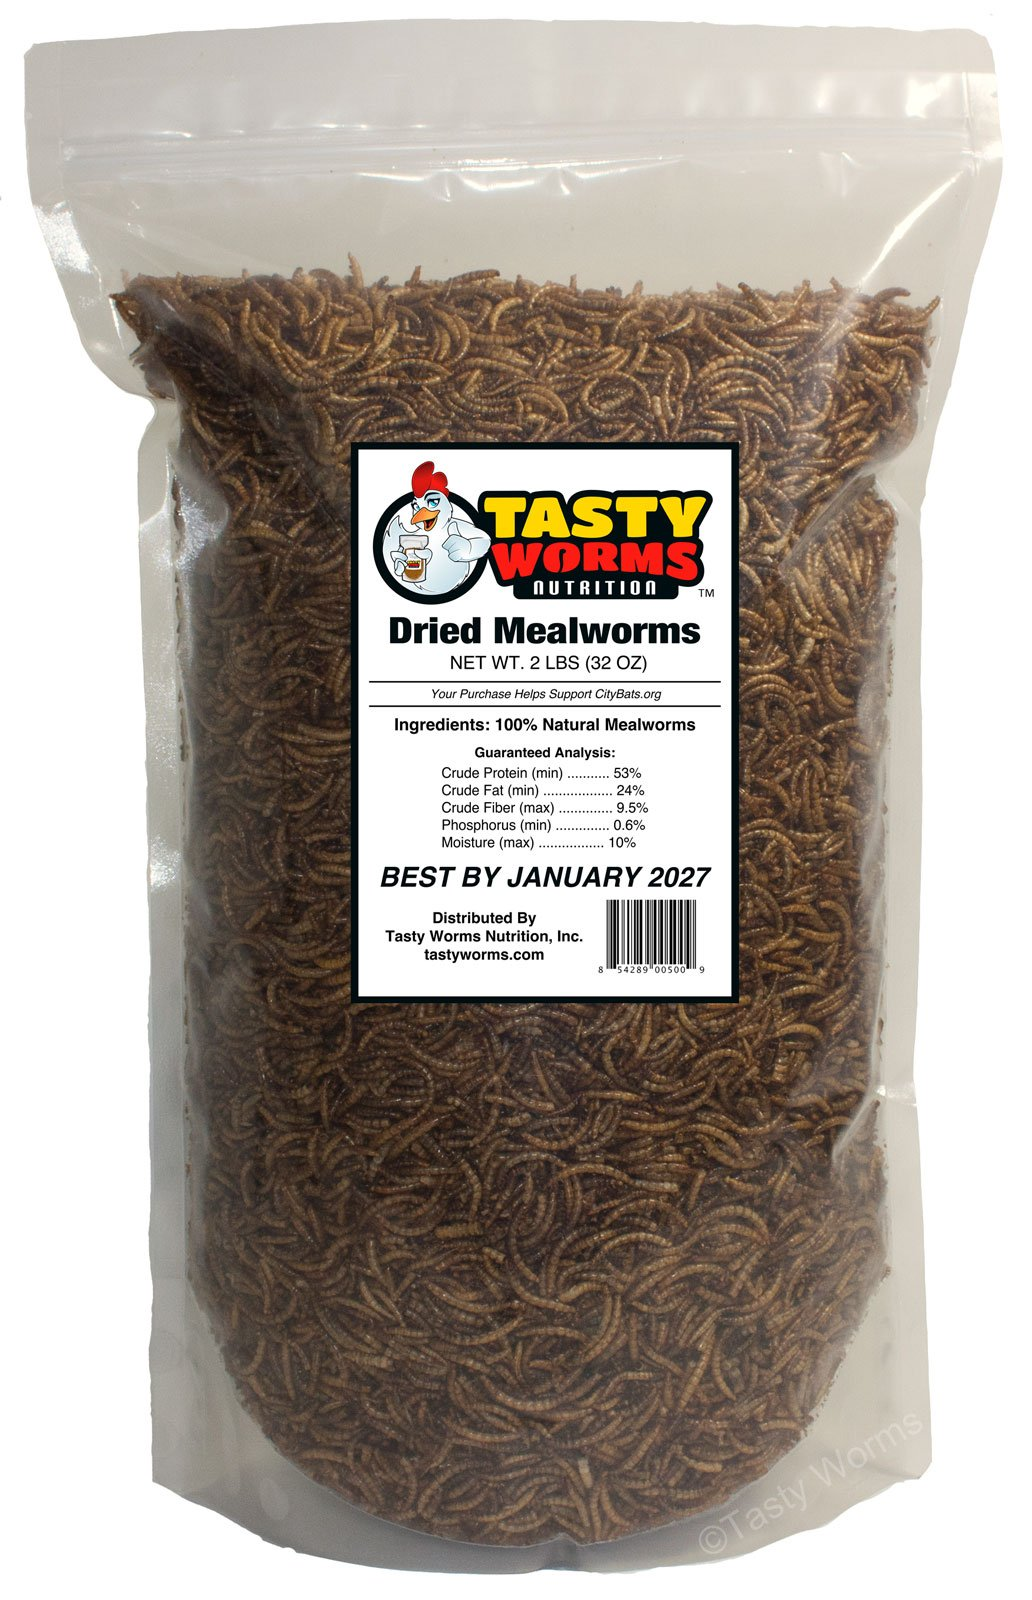 2 Lbs (32oz) Freeze Dried Mealworms Approximately 32,000 Mealworms